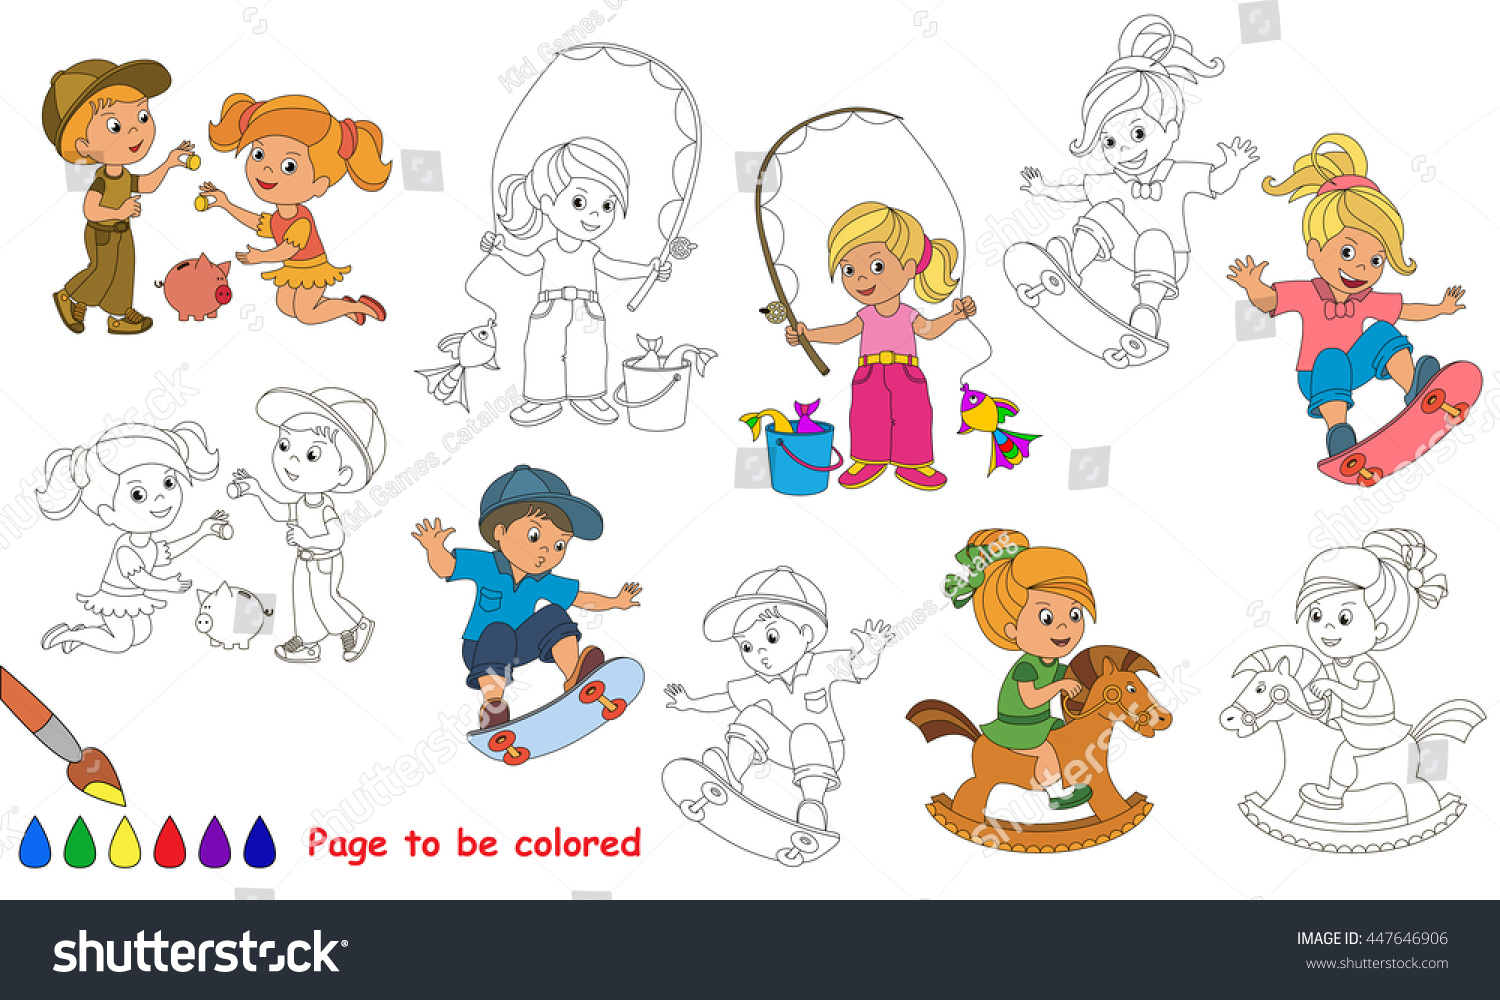 Kid Summer Games Be Colored Coloring Stock Vector 447646906 ...